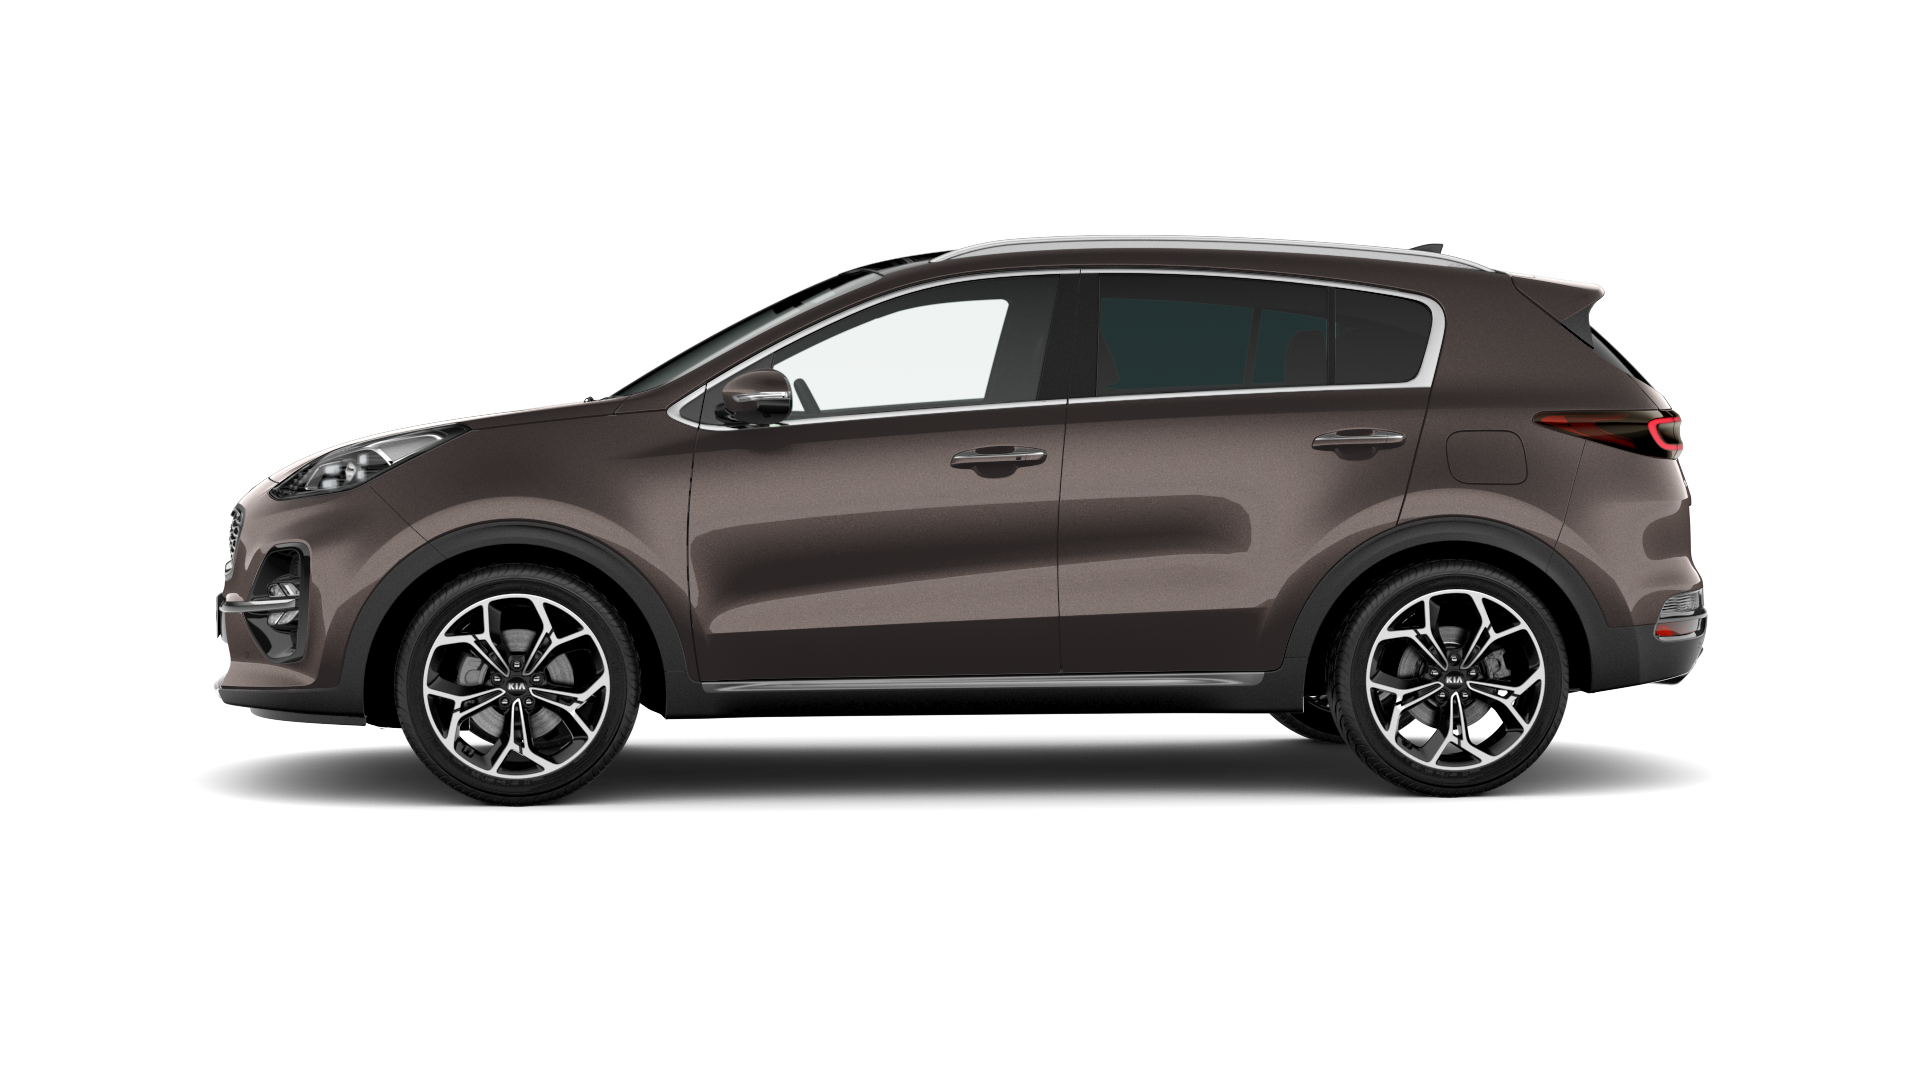 Kia New Sportage Copper Stone